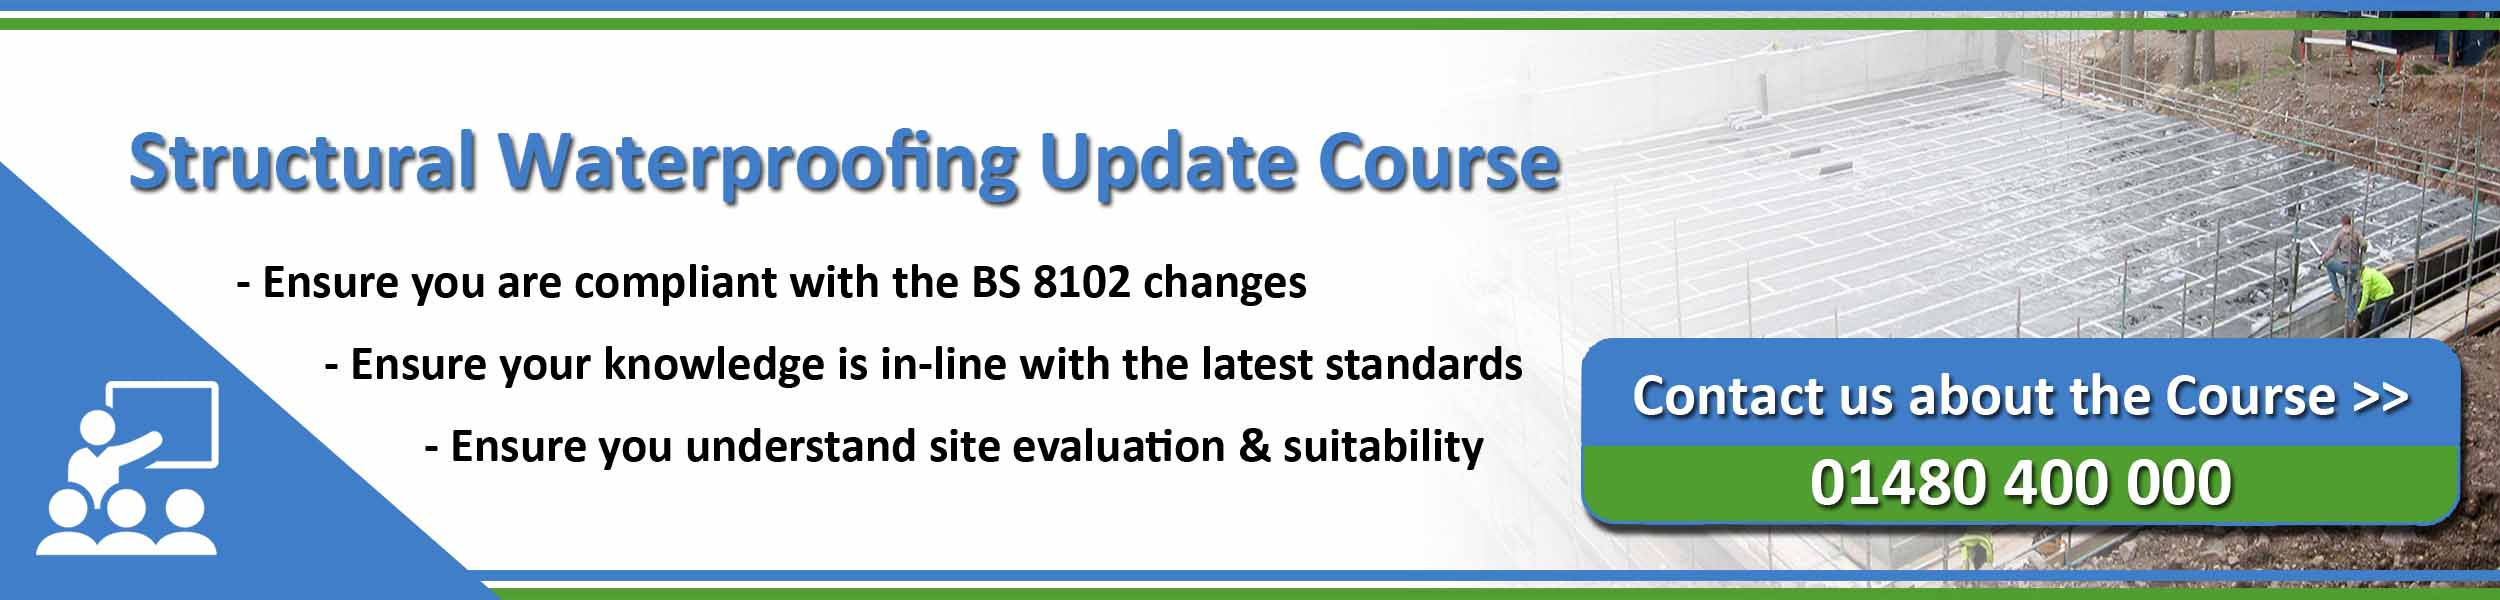 PCA Structural waterproofing update course